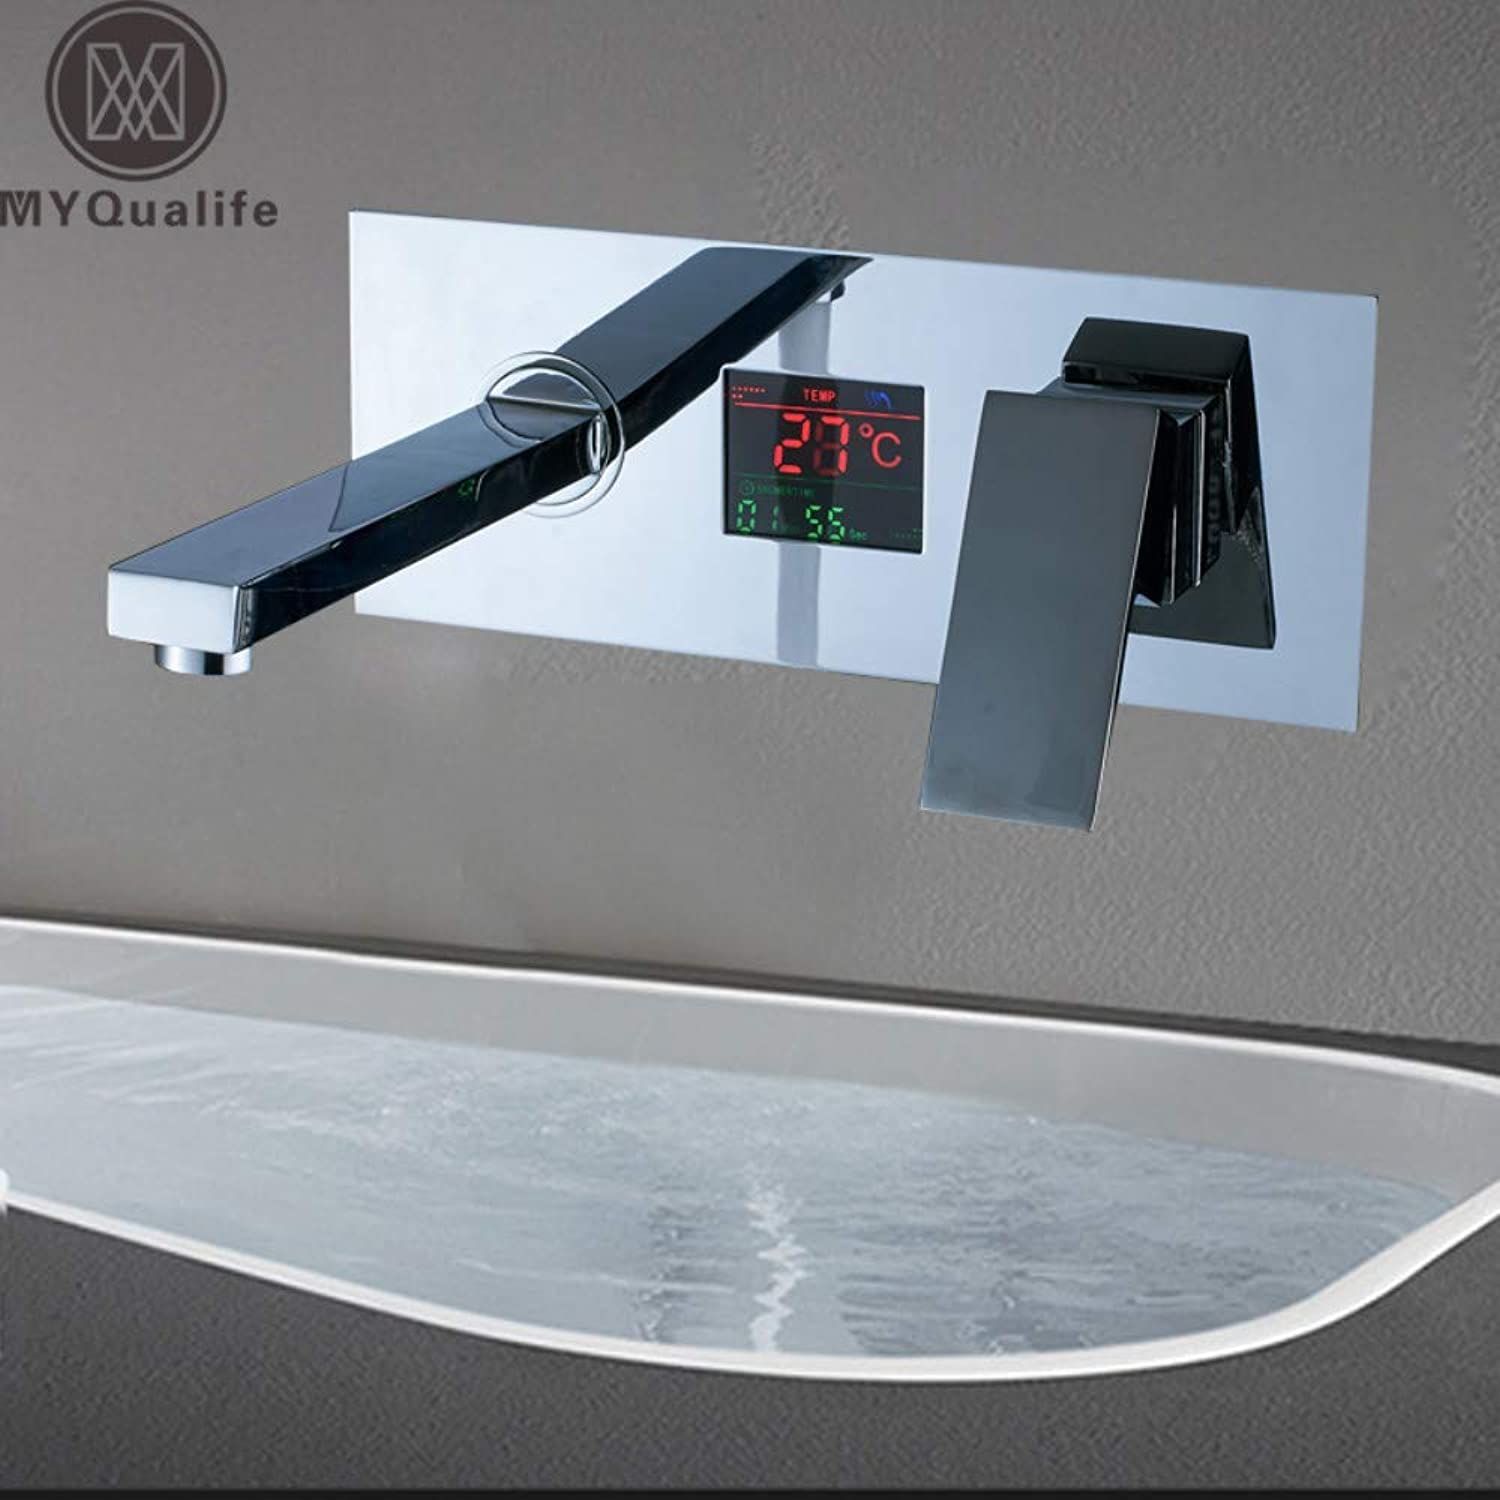 CZOOR Chrome Digital Display Basin Sink Faucet Wall Mounted Bathroom Vessel Sink Mixer Tap with Embedded Box Hot and Cold Taps